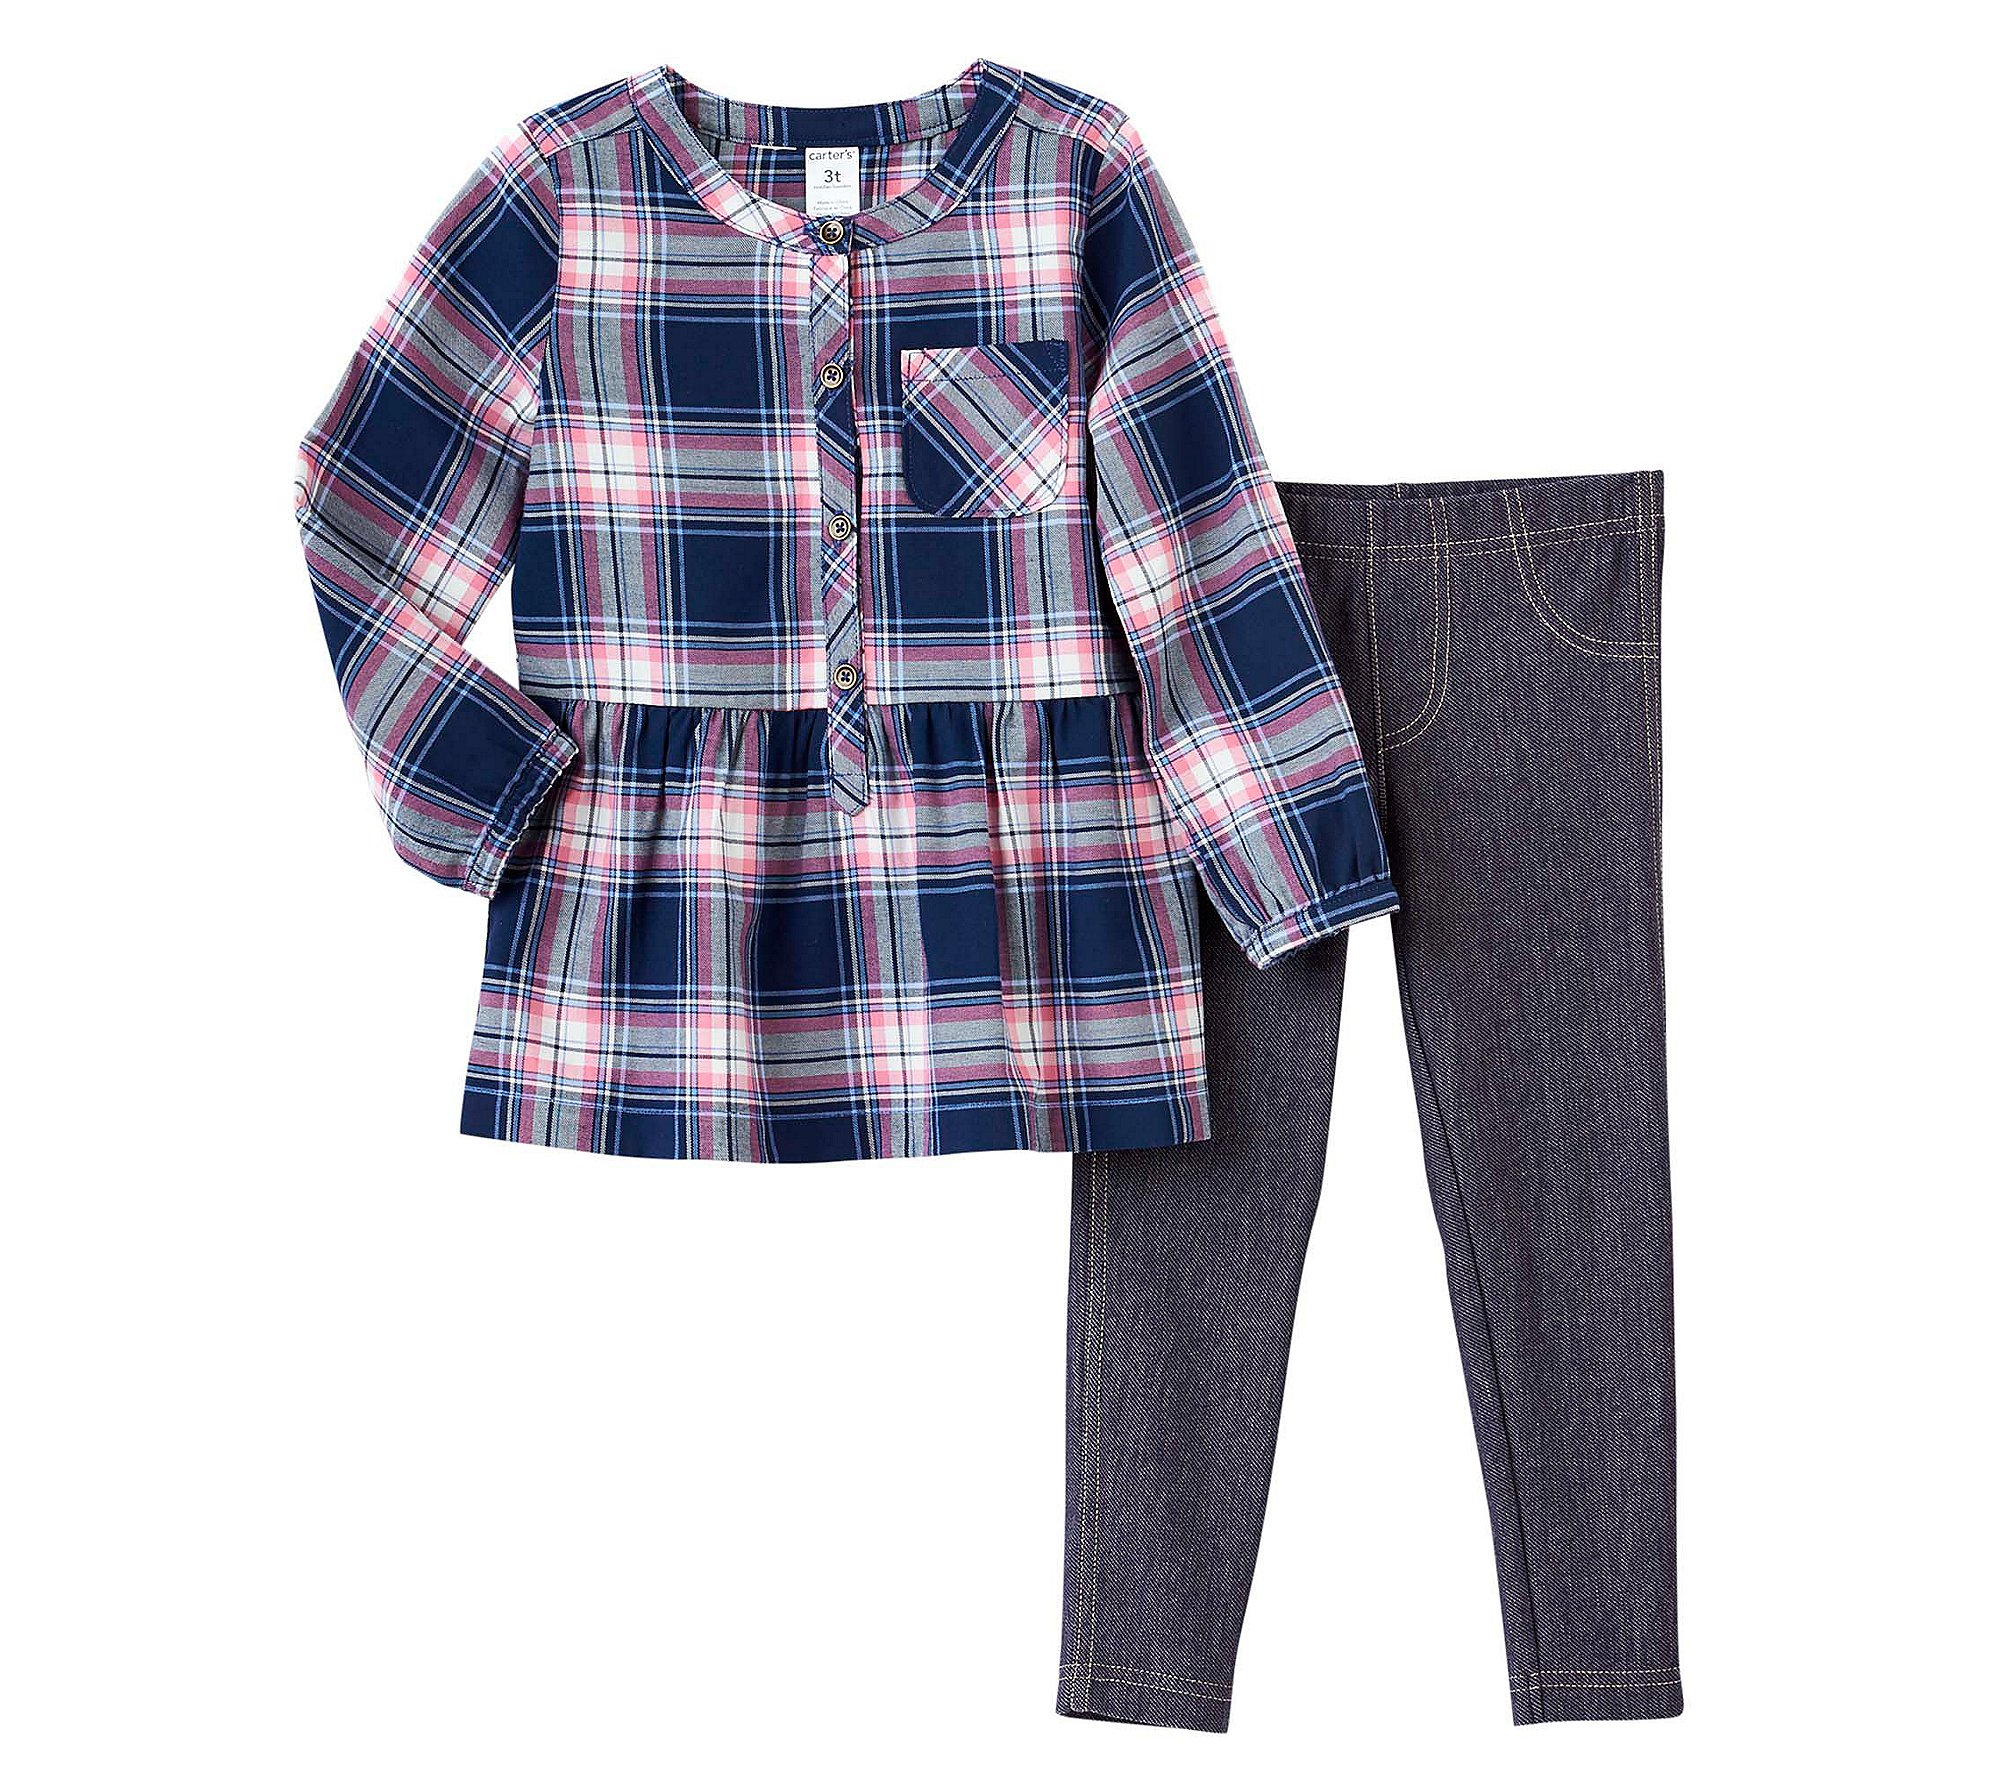 Carter's Girls' 2T-4T Long Sleeve Plaid Top and Jeggings Set